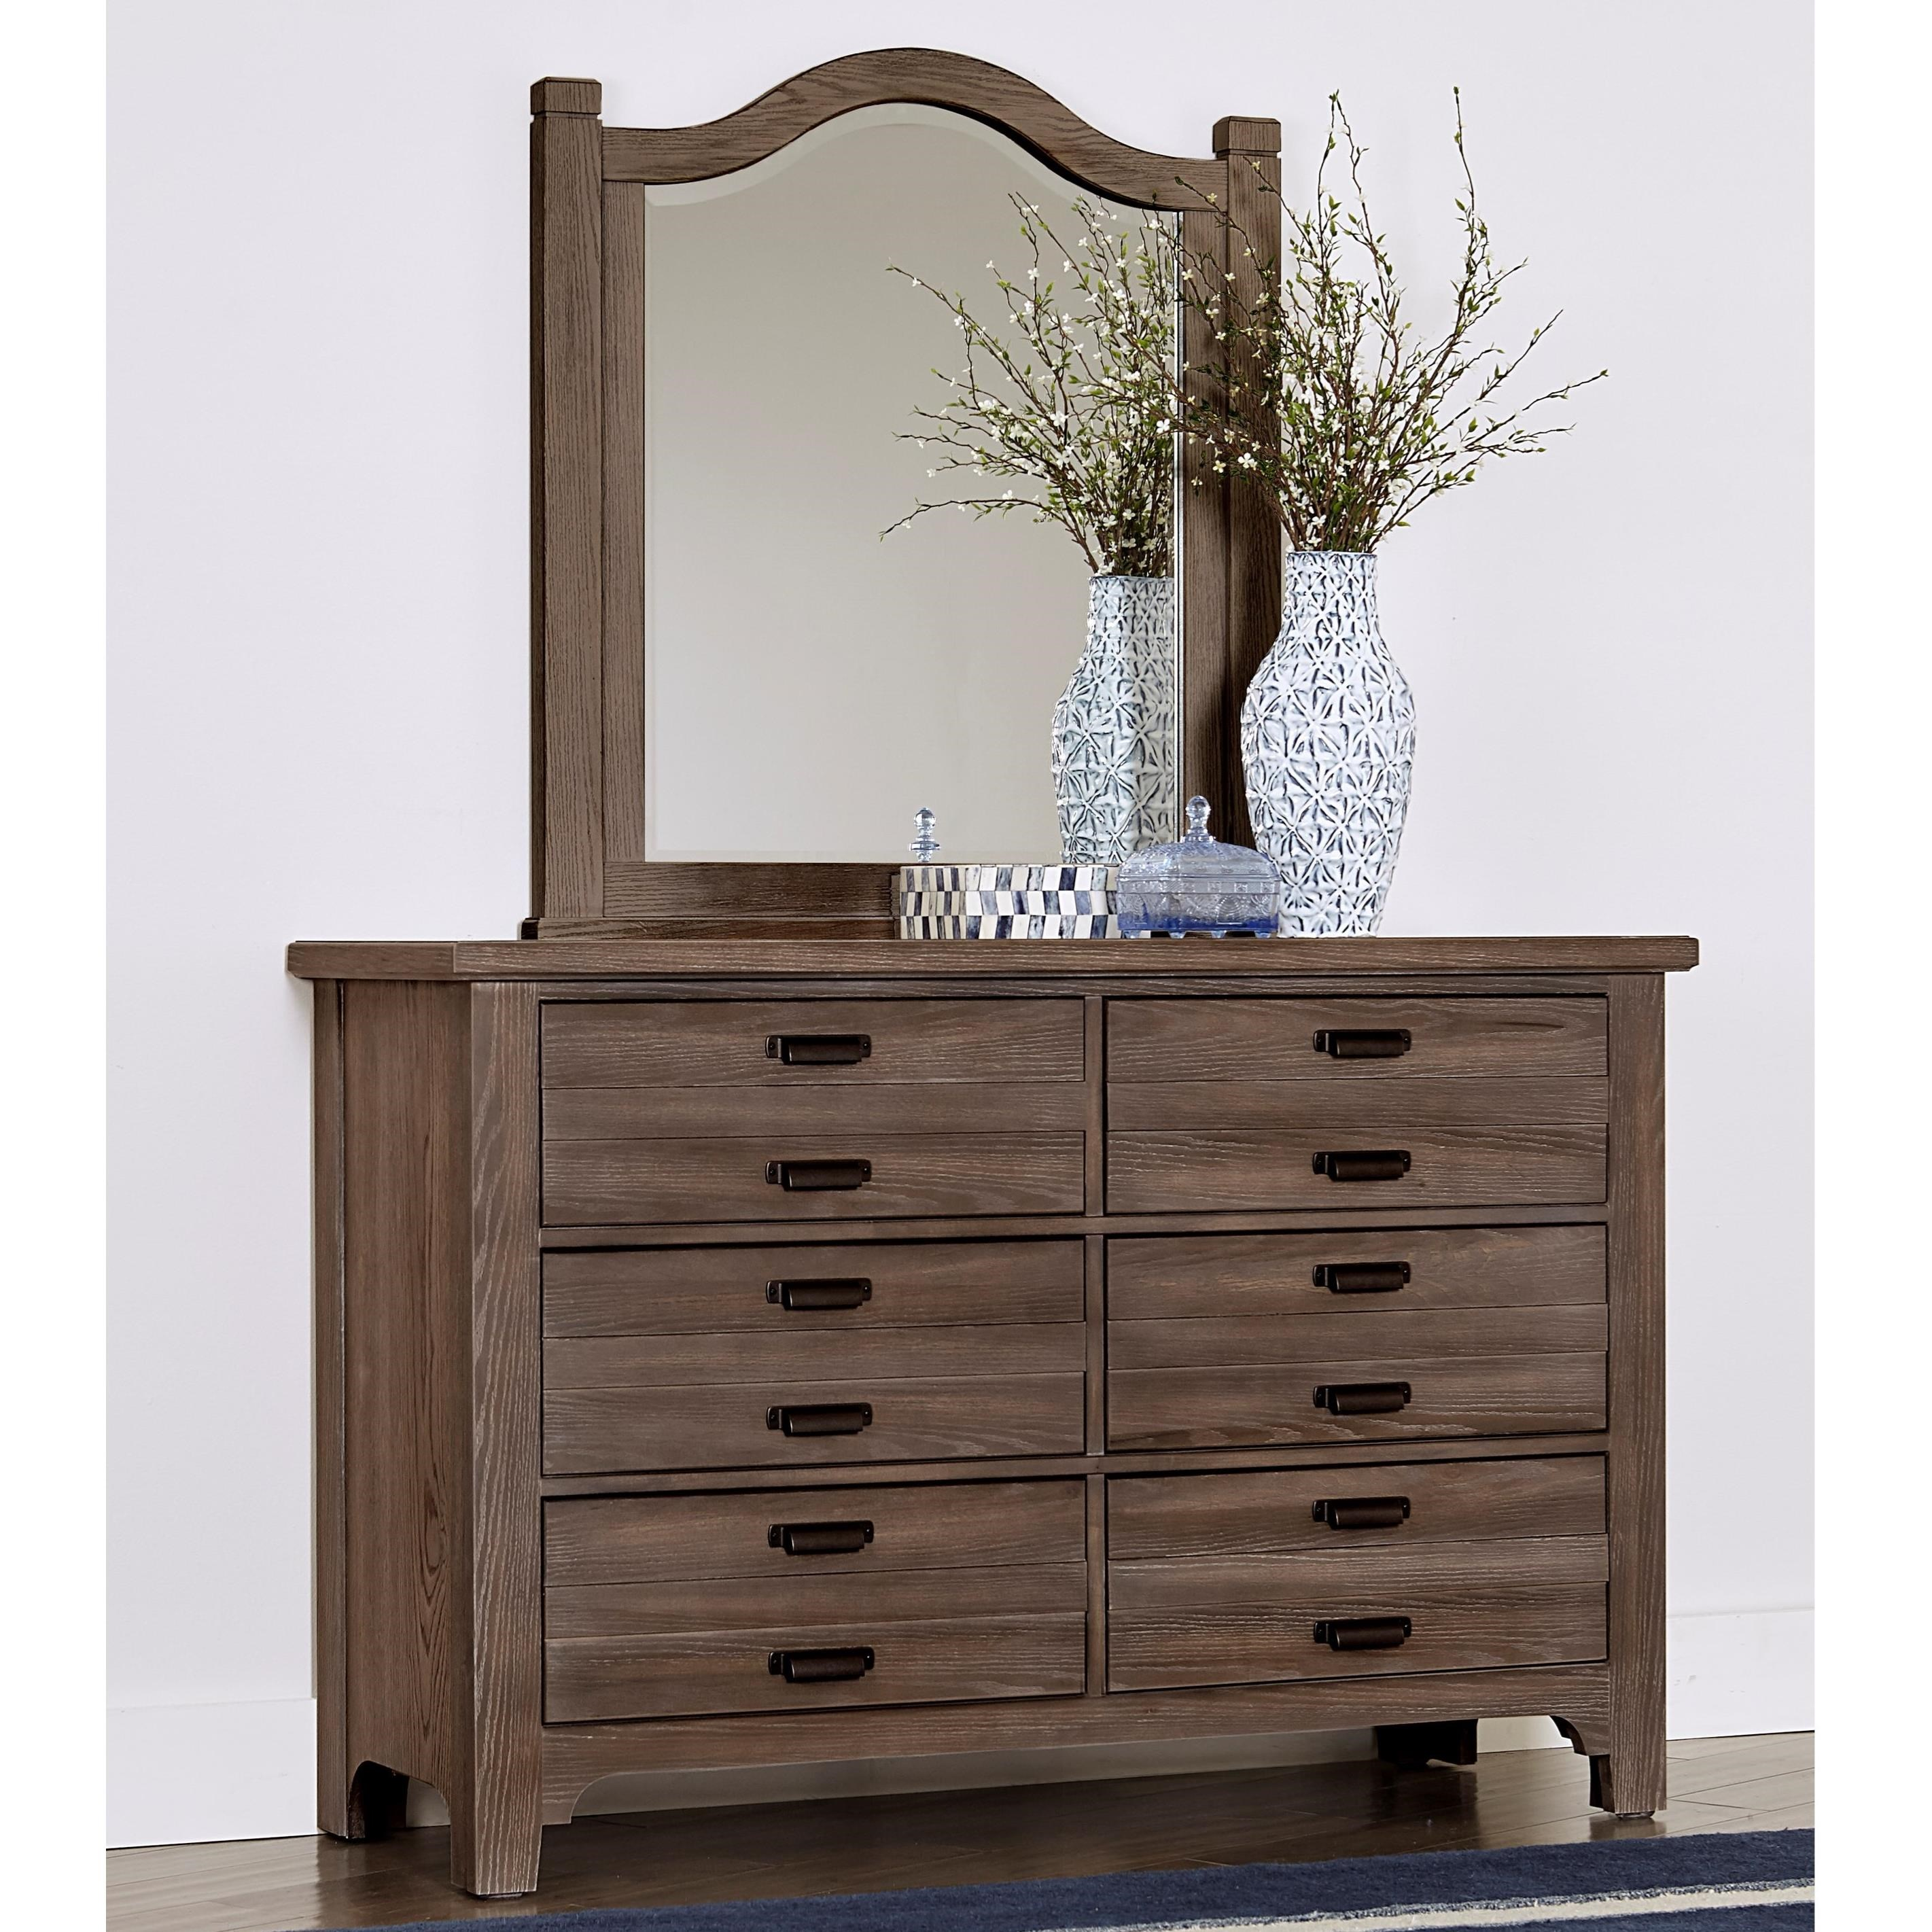 Bungalow Double Dresser and Arch Mirror by Laurel Mercantile Co. at Johnny Janosik